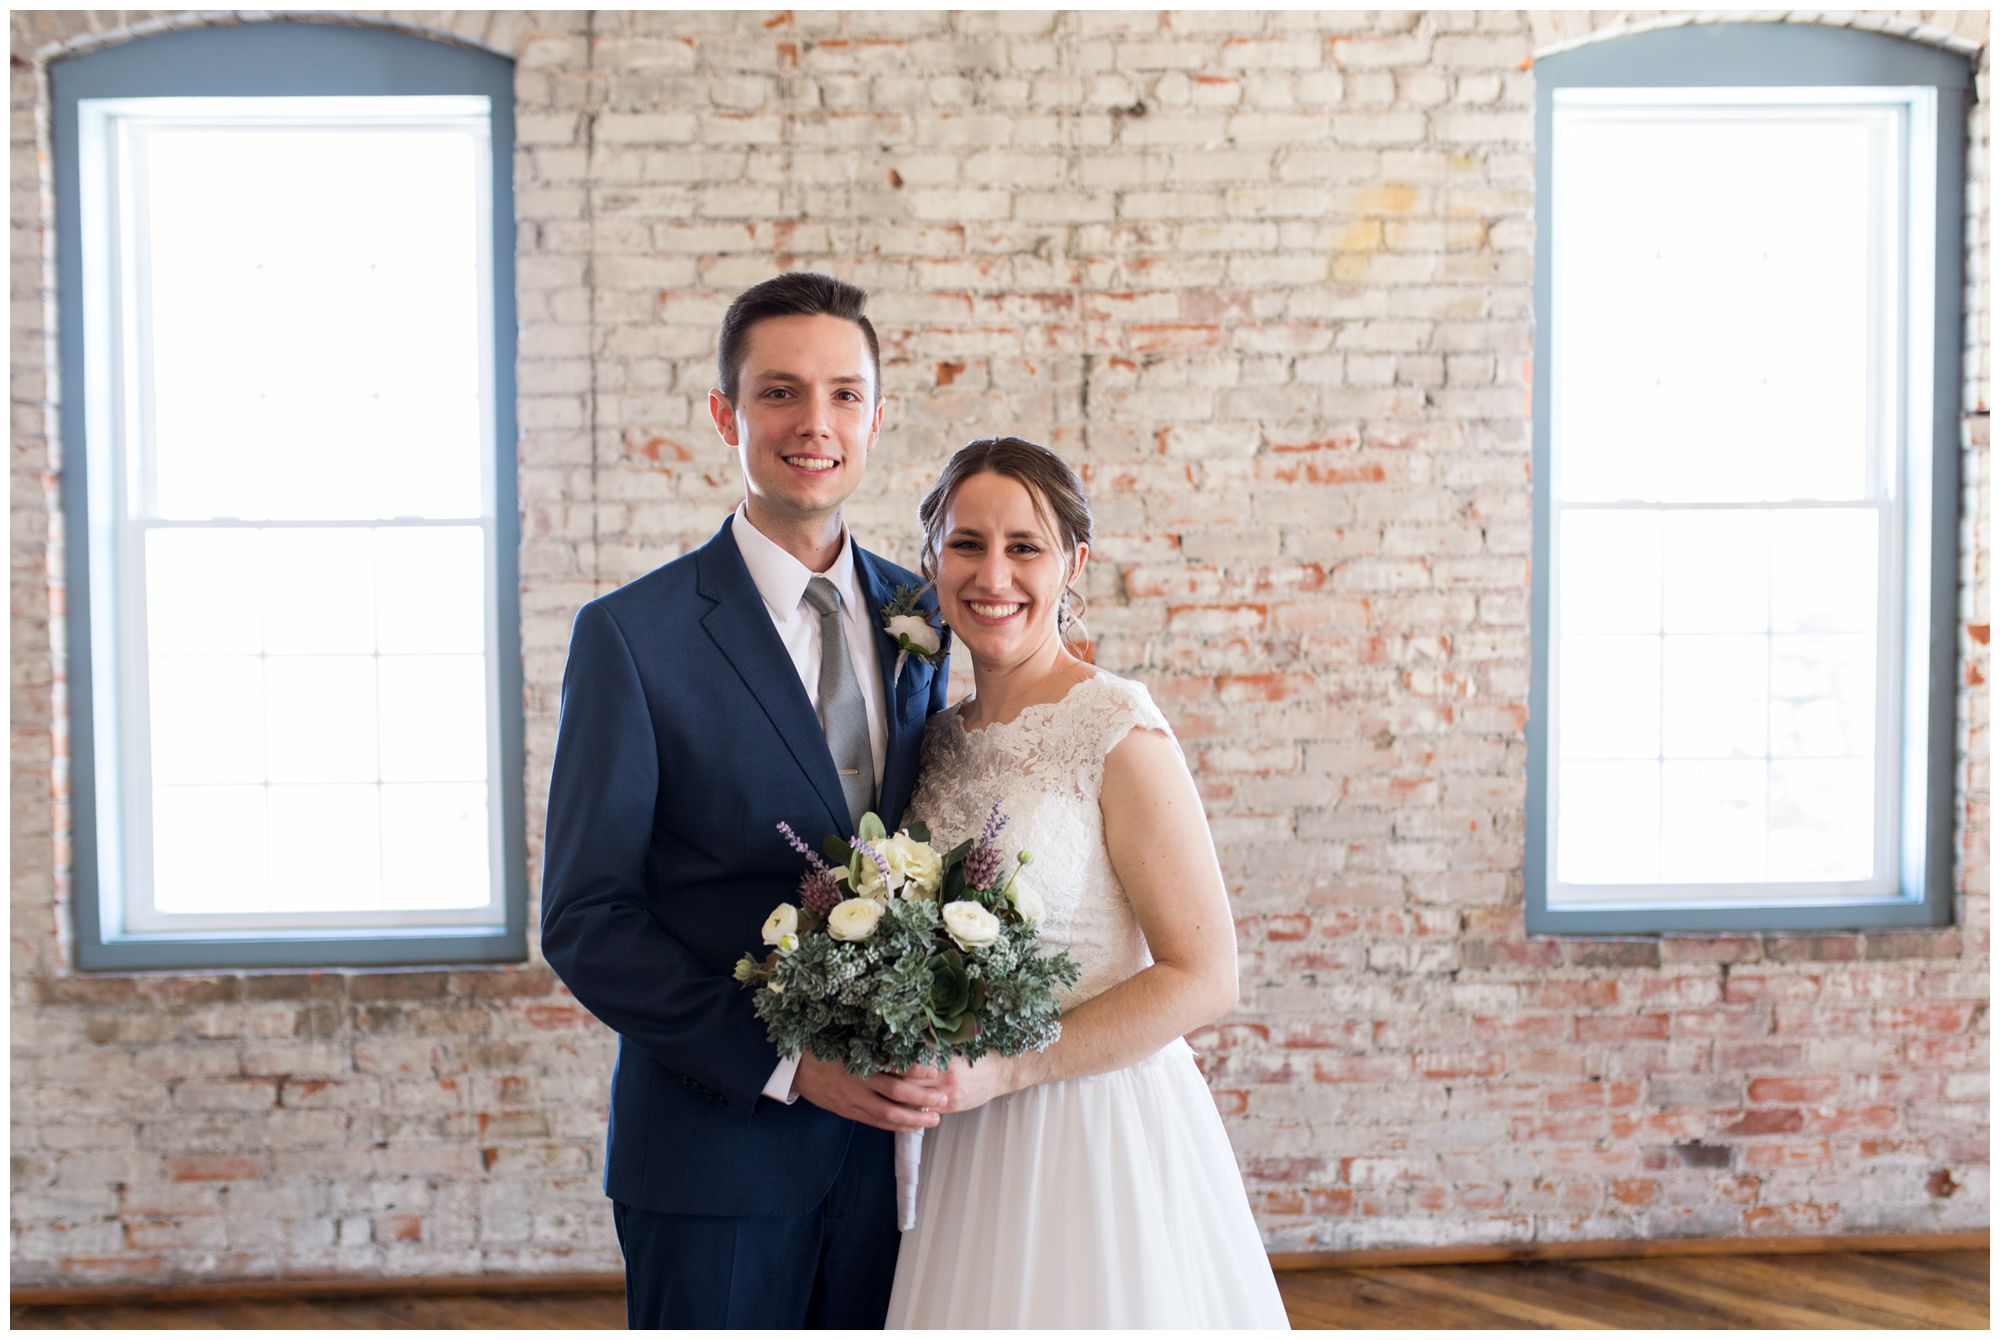 Goshen bride and groom wedding photos at Bread & Chocolate